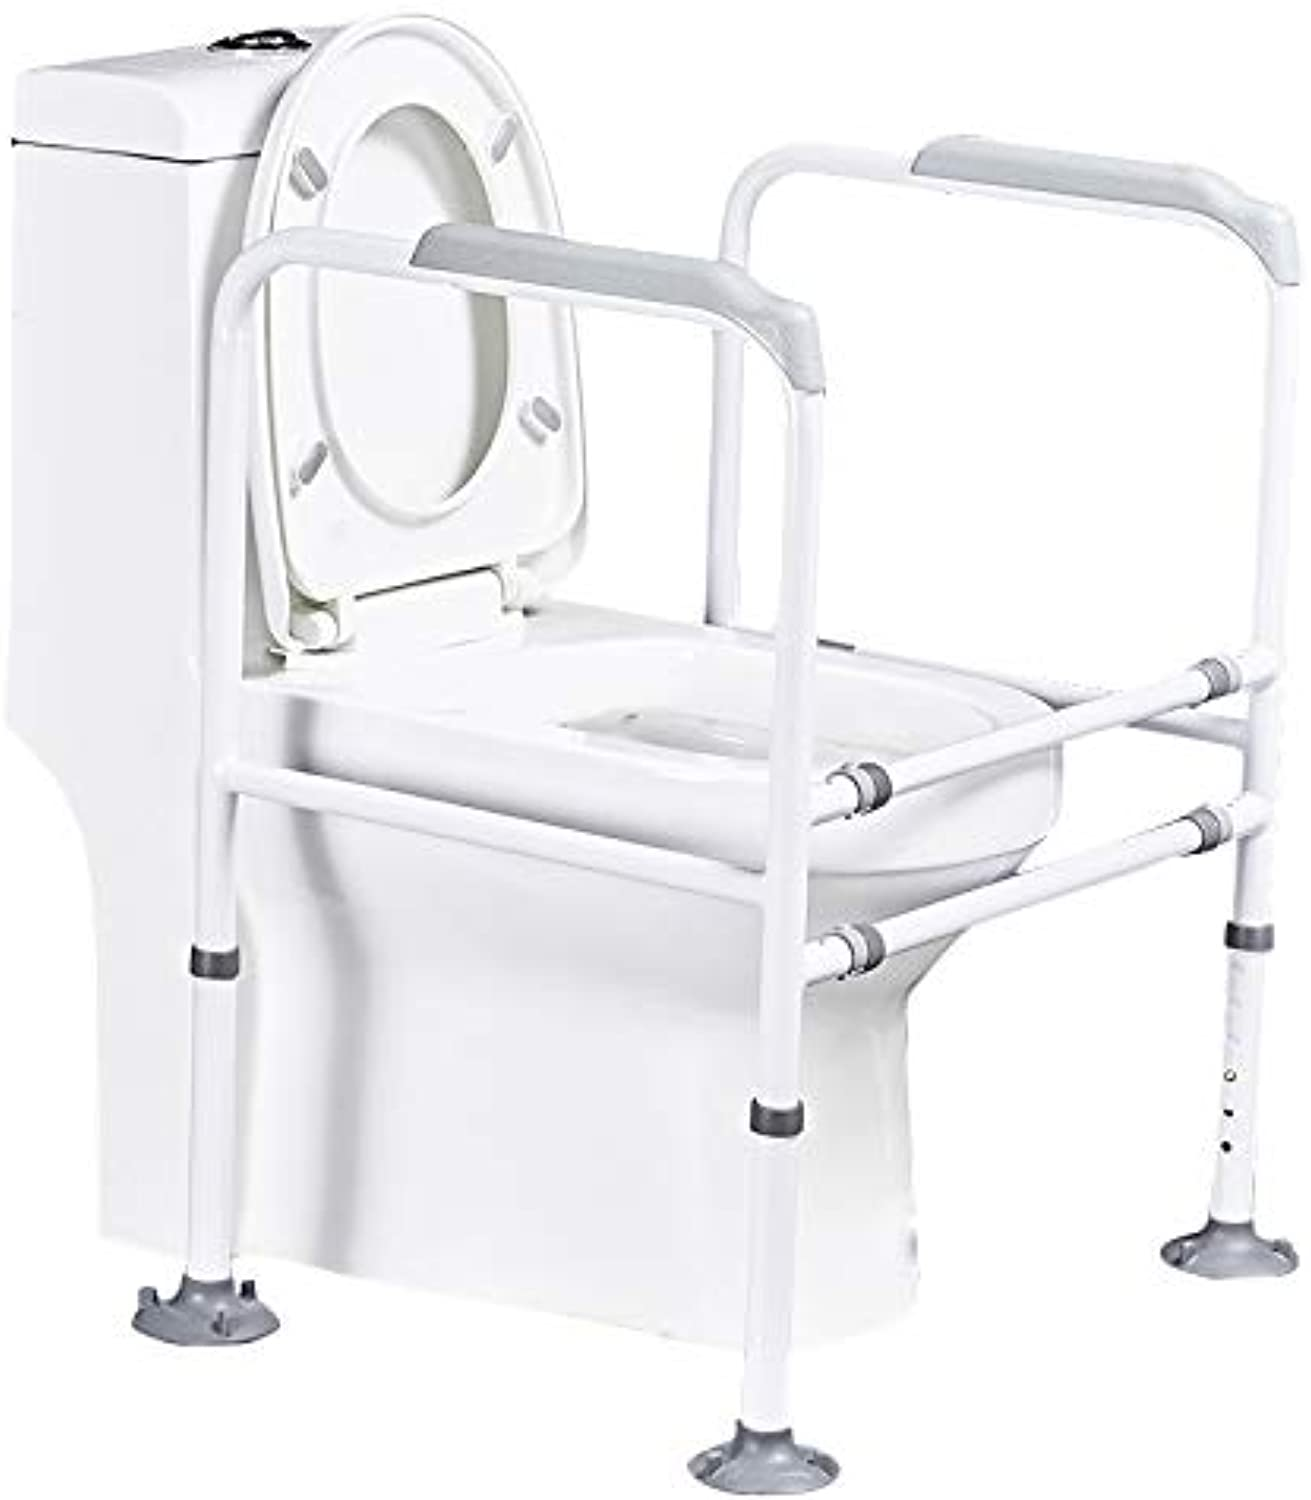 Pebegain Bathroom Height Adjustable Toilet Armrest, Elderly, Pregnant and Disabled Toilet Safety Auxiliary Handrails, Wear-Resistant Punch Free Booster Frame